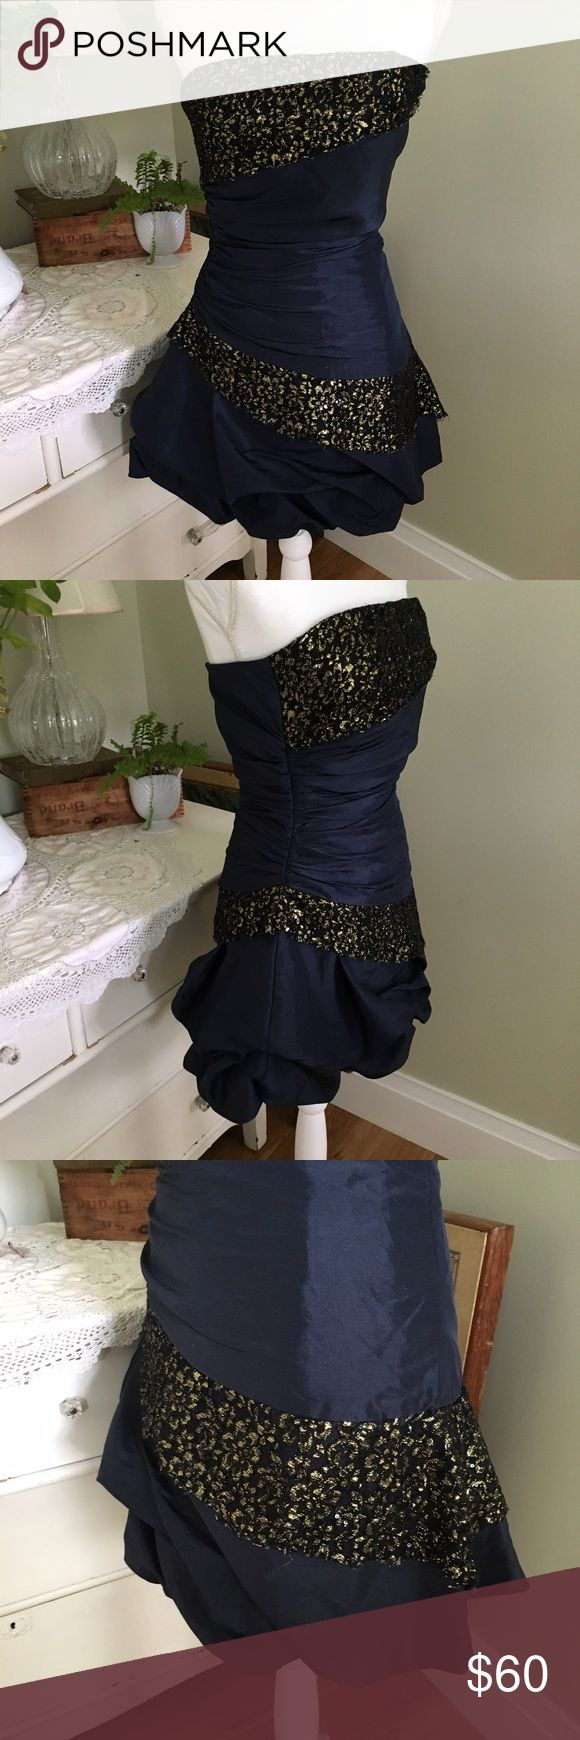 """Ya Los Angeles Blue Strapless Mini Formal Dress This satin style mini formal dress from Ya Los Angeles is youthful and fun. The form fitting strapless bodice showcases the flattering ruching detail while the short pick up skirt adds a playful touch. Side zipper and fully lined. 55% cotton; 45% polyester. Black and gold lace/sequins is frayed at edges (see 7th photo). Size: Small, but fits like an XXS or XS. Chest. 15.25"""". Waist: 13"""". Length (front): 27"""". Length (back): 23.5"""". Ya Los Angeles…"""